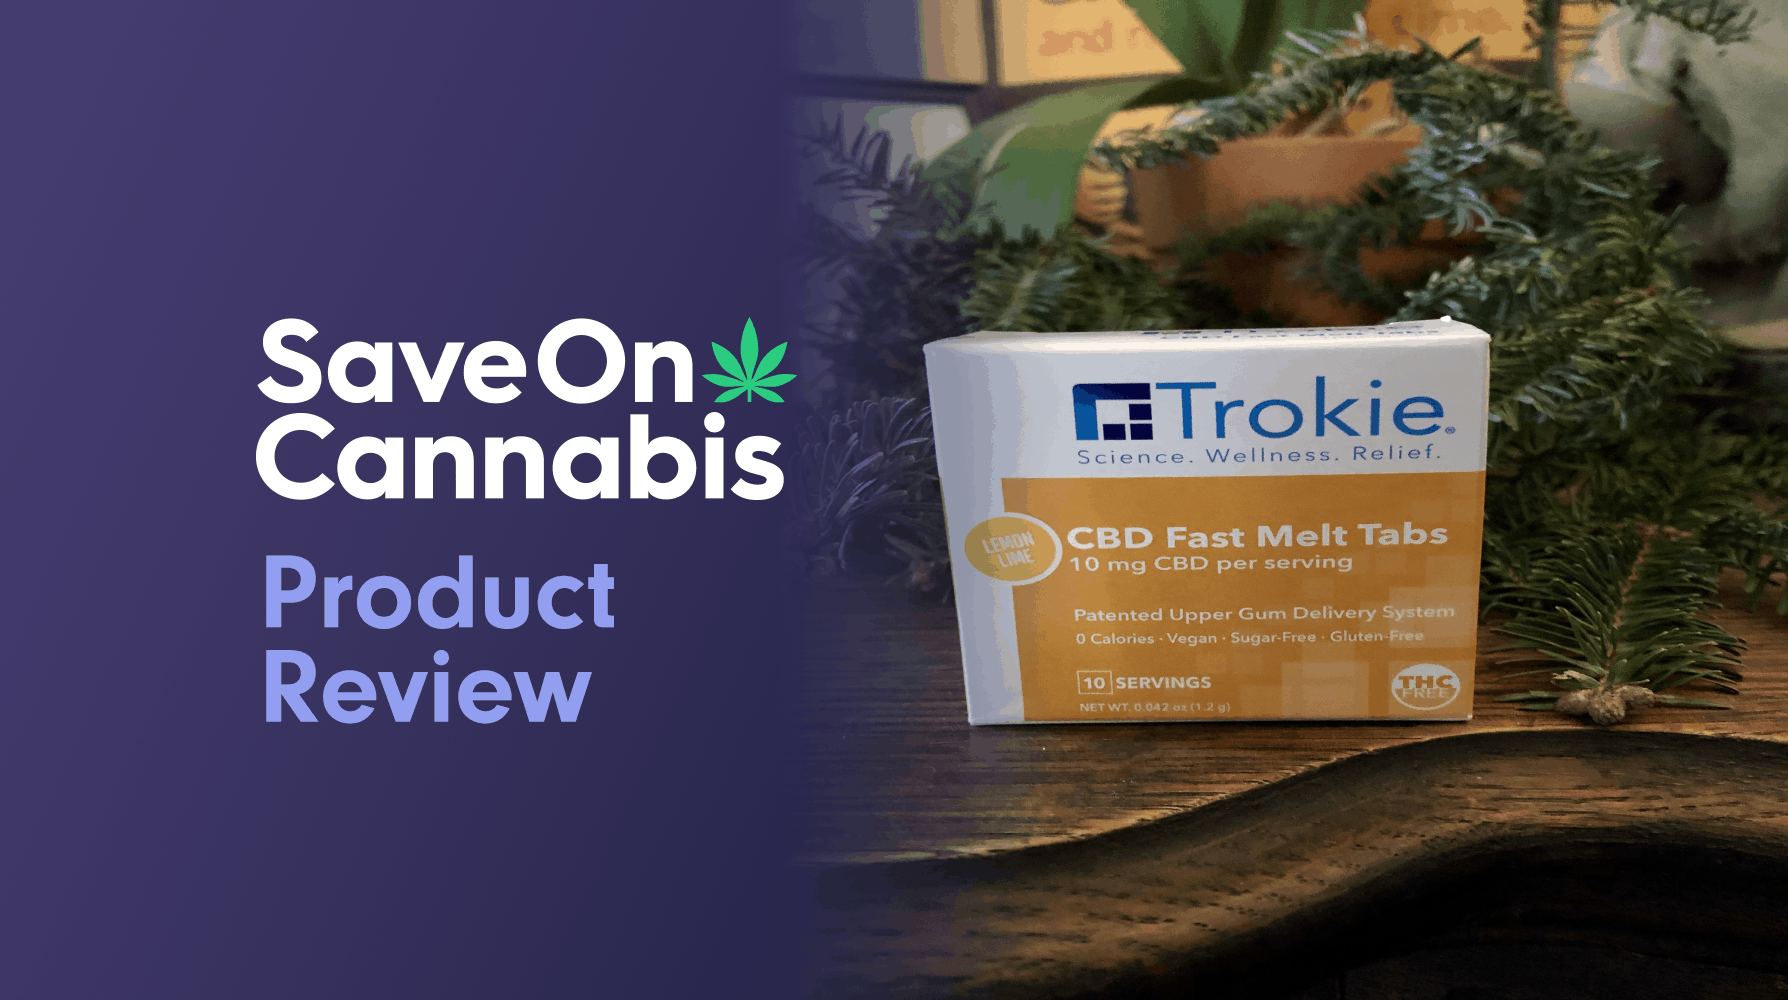 Trokie Fast Melt Tabs Save On Cannabis Review Website